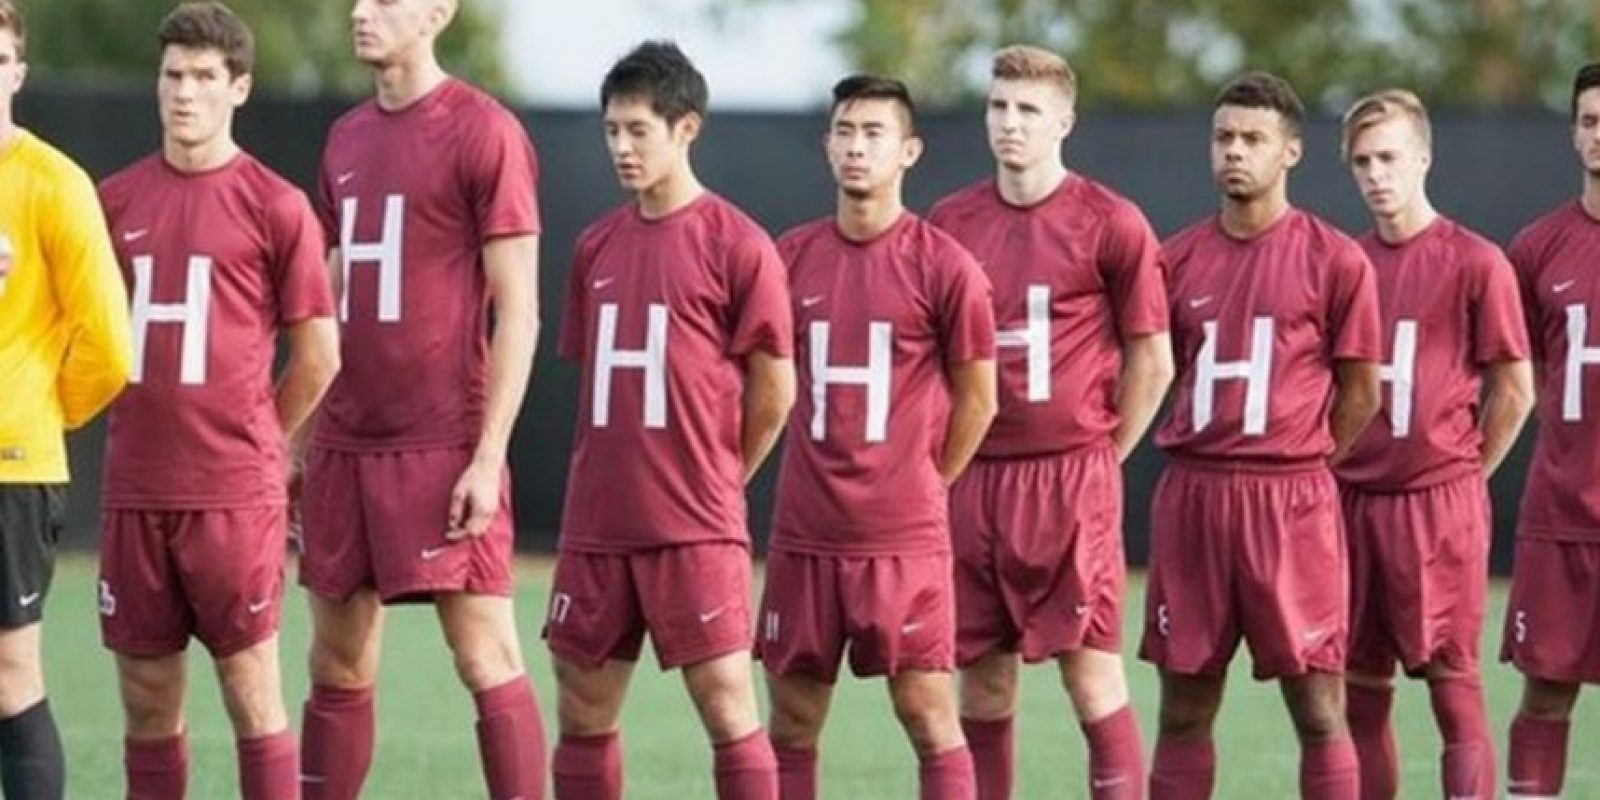 Futbolistas de la Universidad de Harvard enfrentam tremendo escándalo sexual Foto: Ivy League